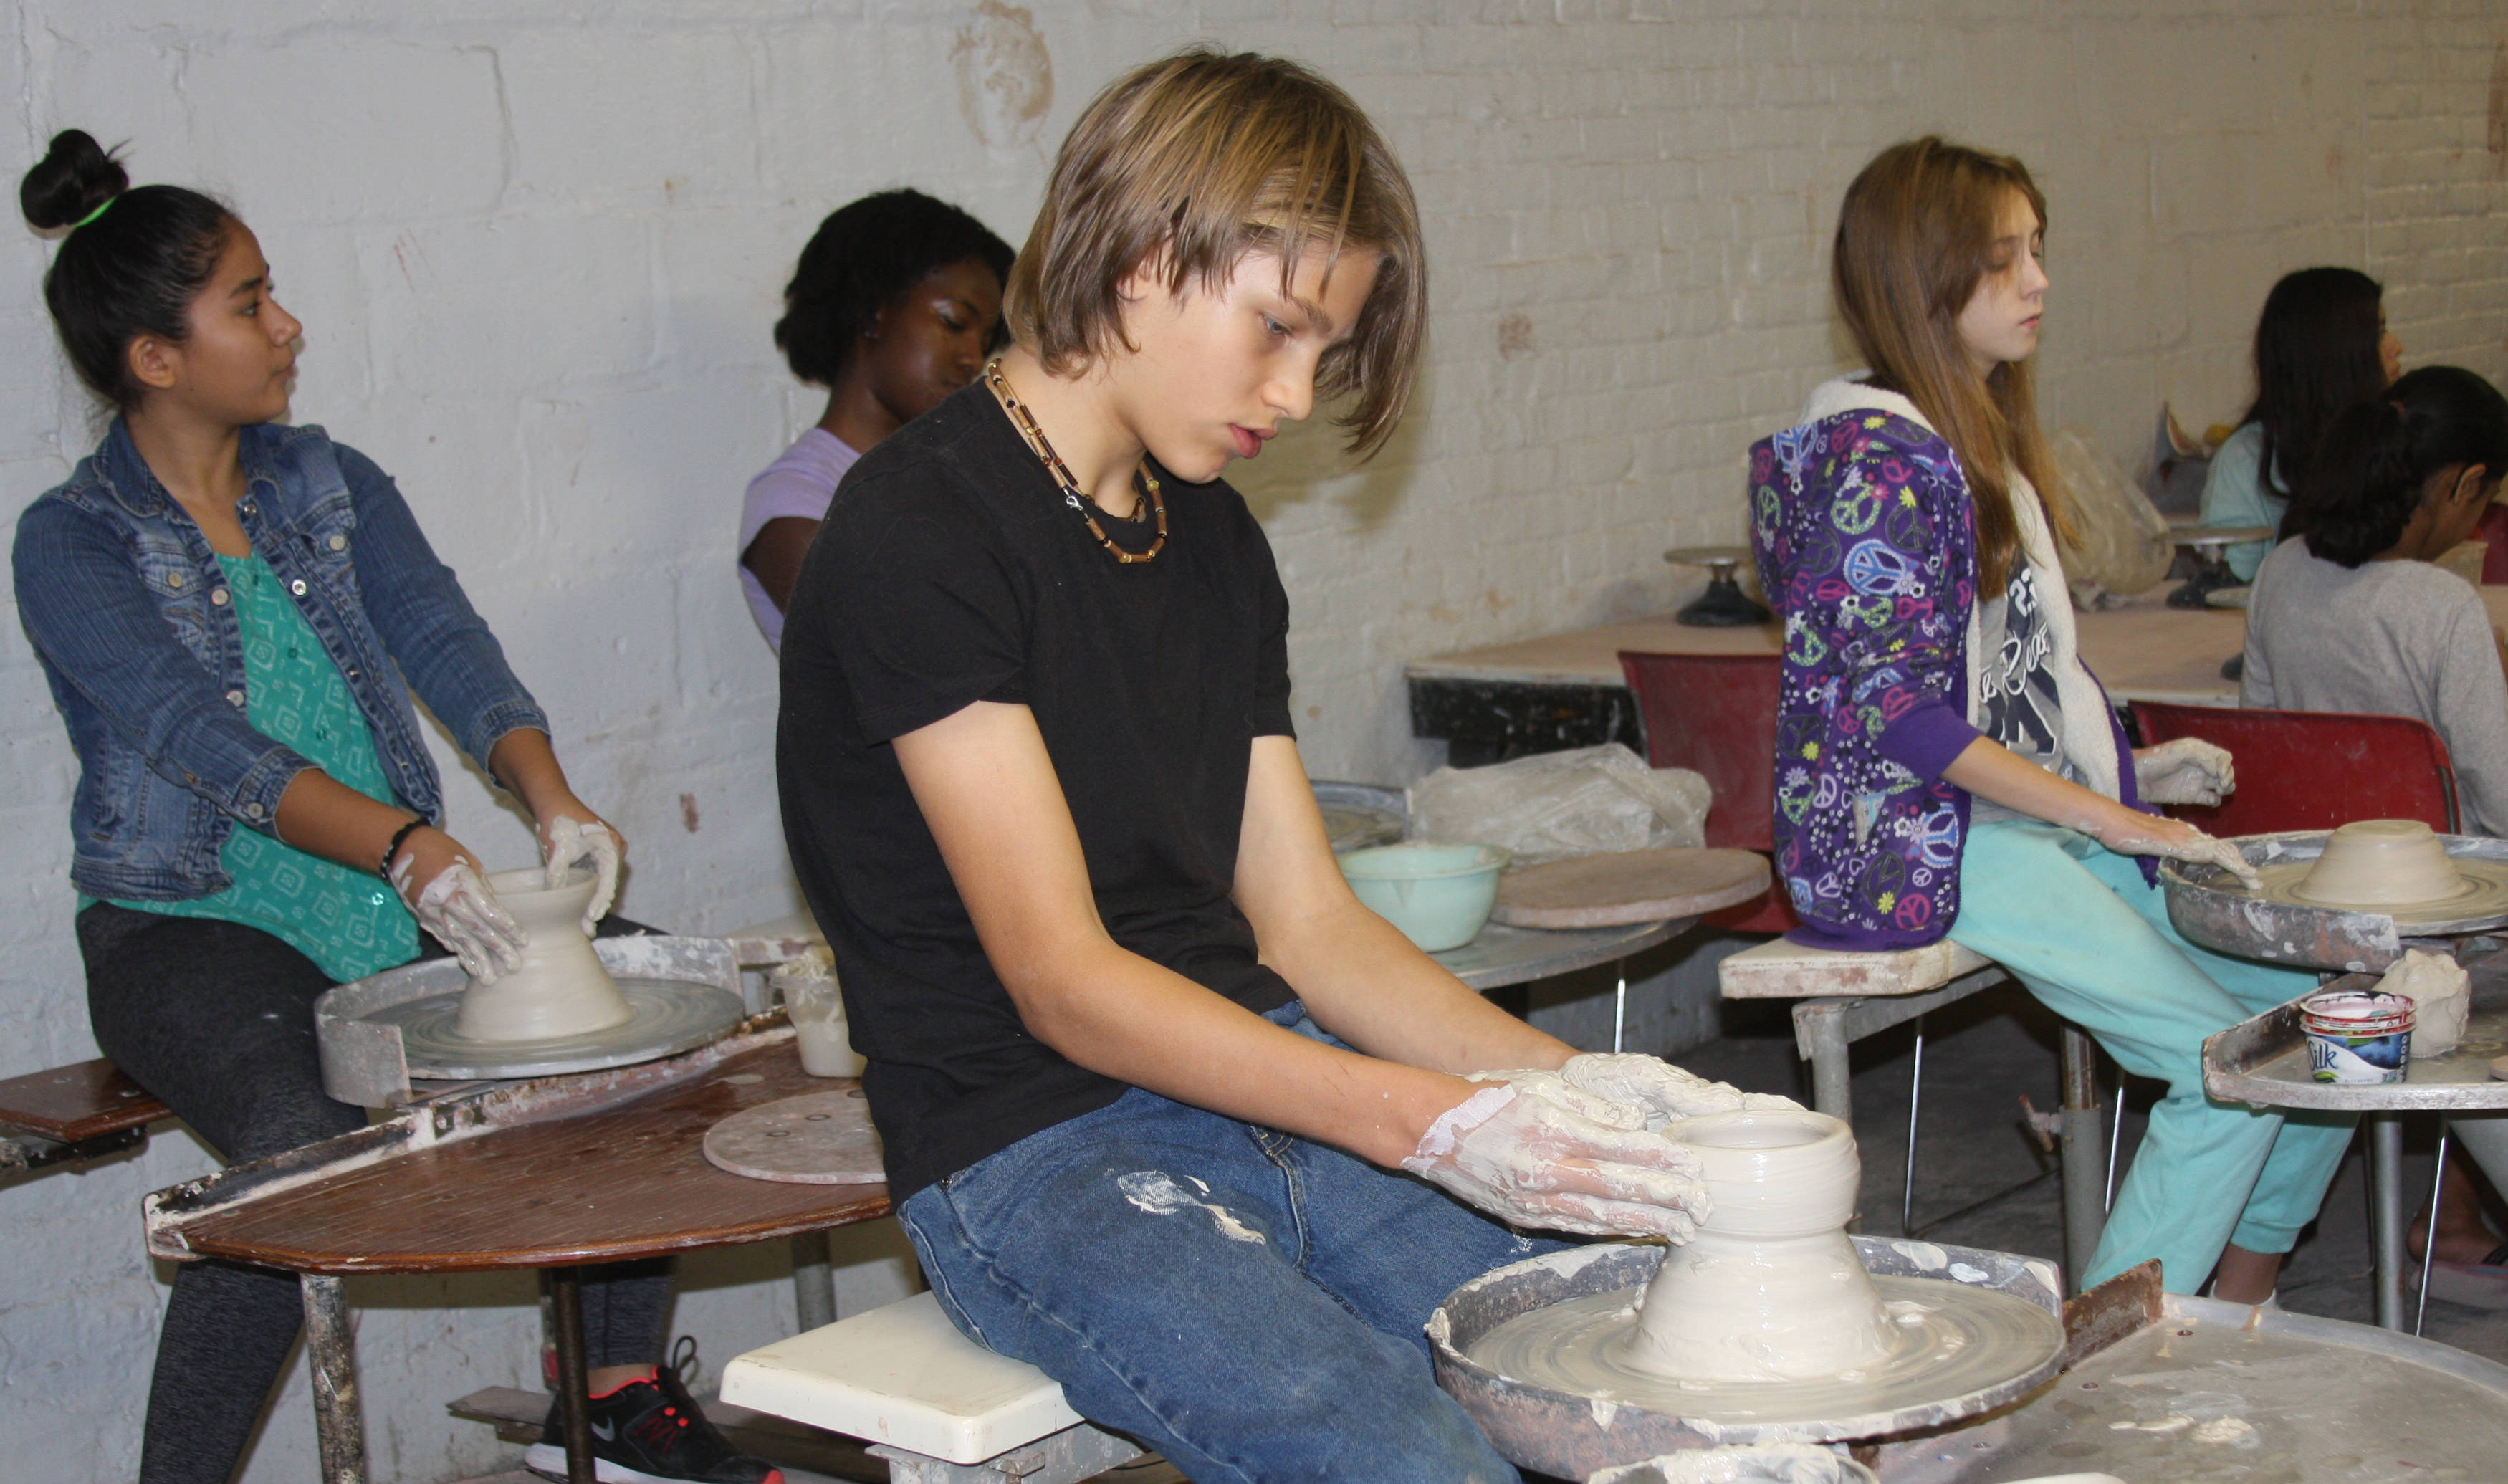 b4d7b6a47b36090a09fc_TEEN_POTTERY-_duCret_Teen_Classes.jpg